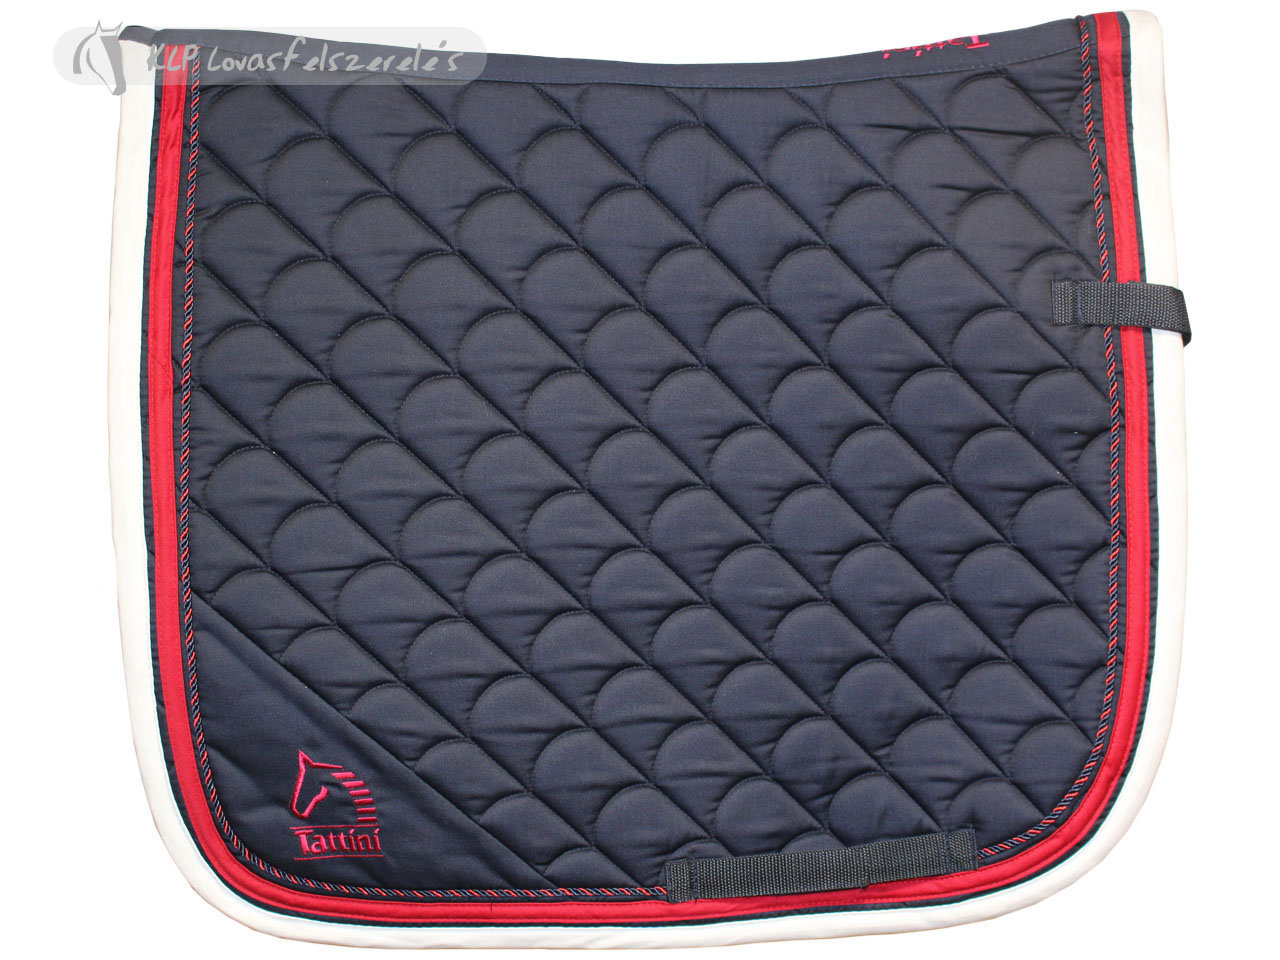 Tattini Saddle Pad Dressage Breathable